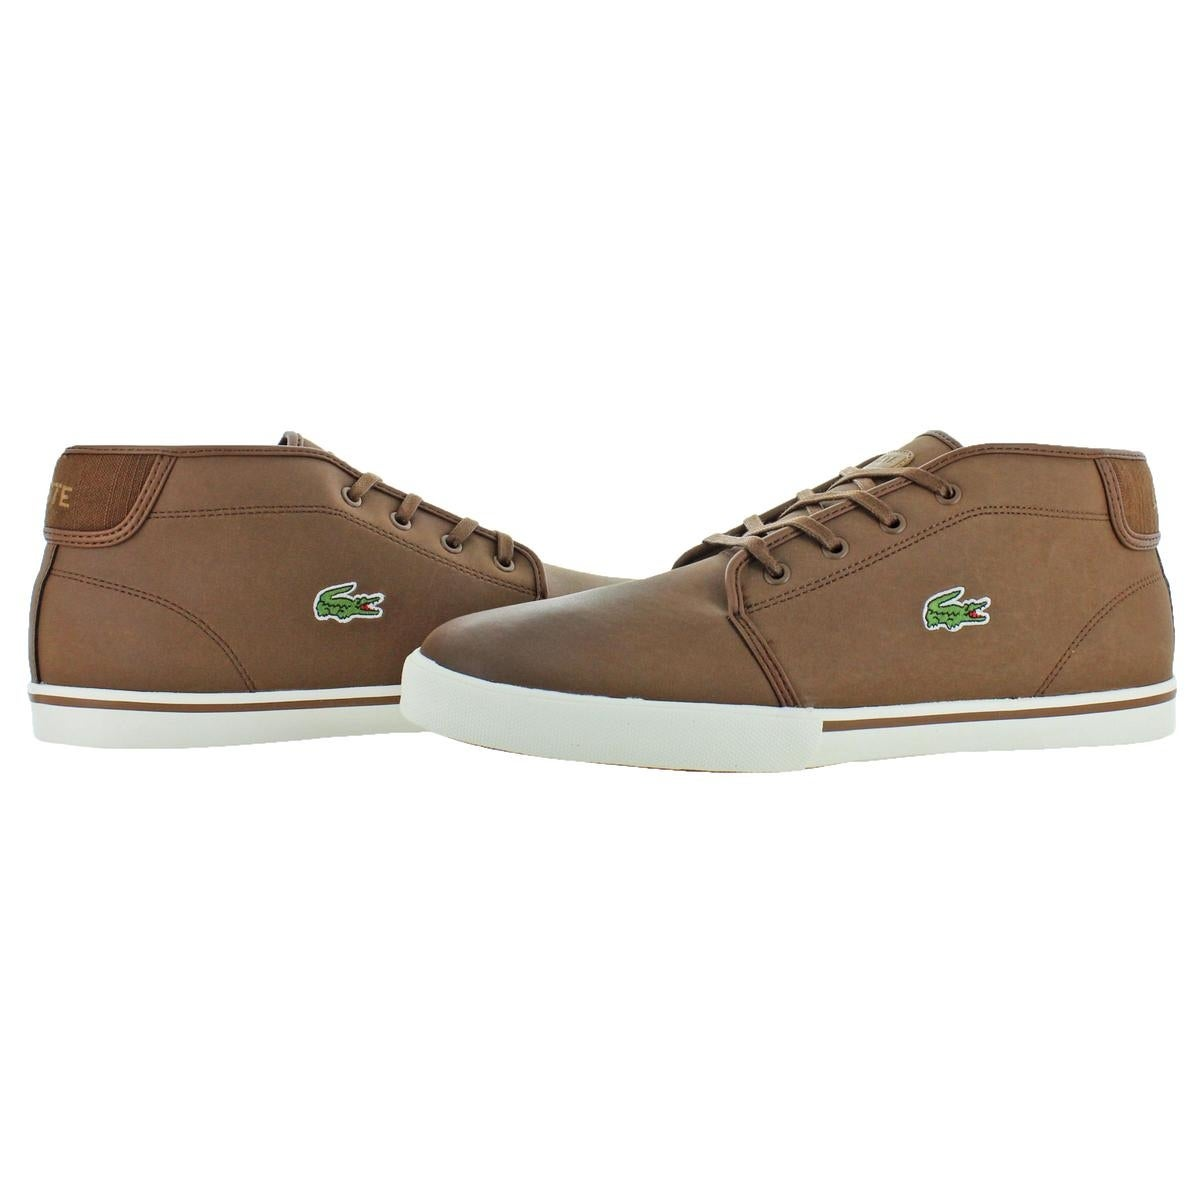 8c1603570799c Shop Lacoste Mens Ampthill Chukka Leather Casual - Free Shipping ...